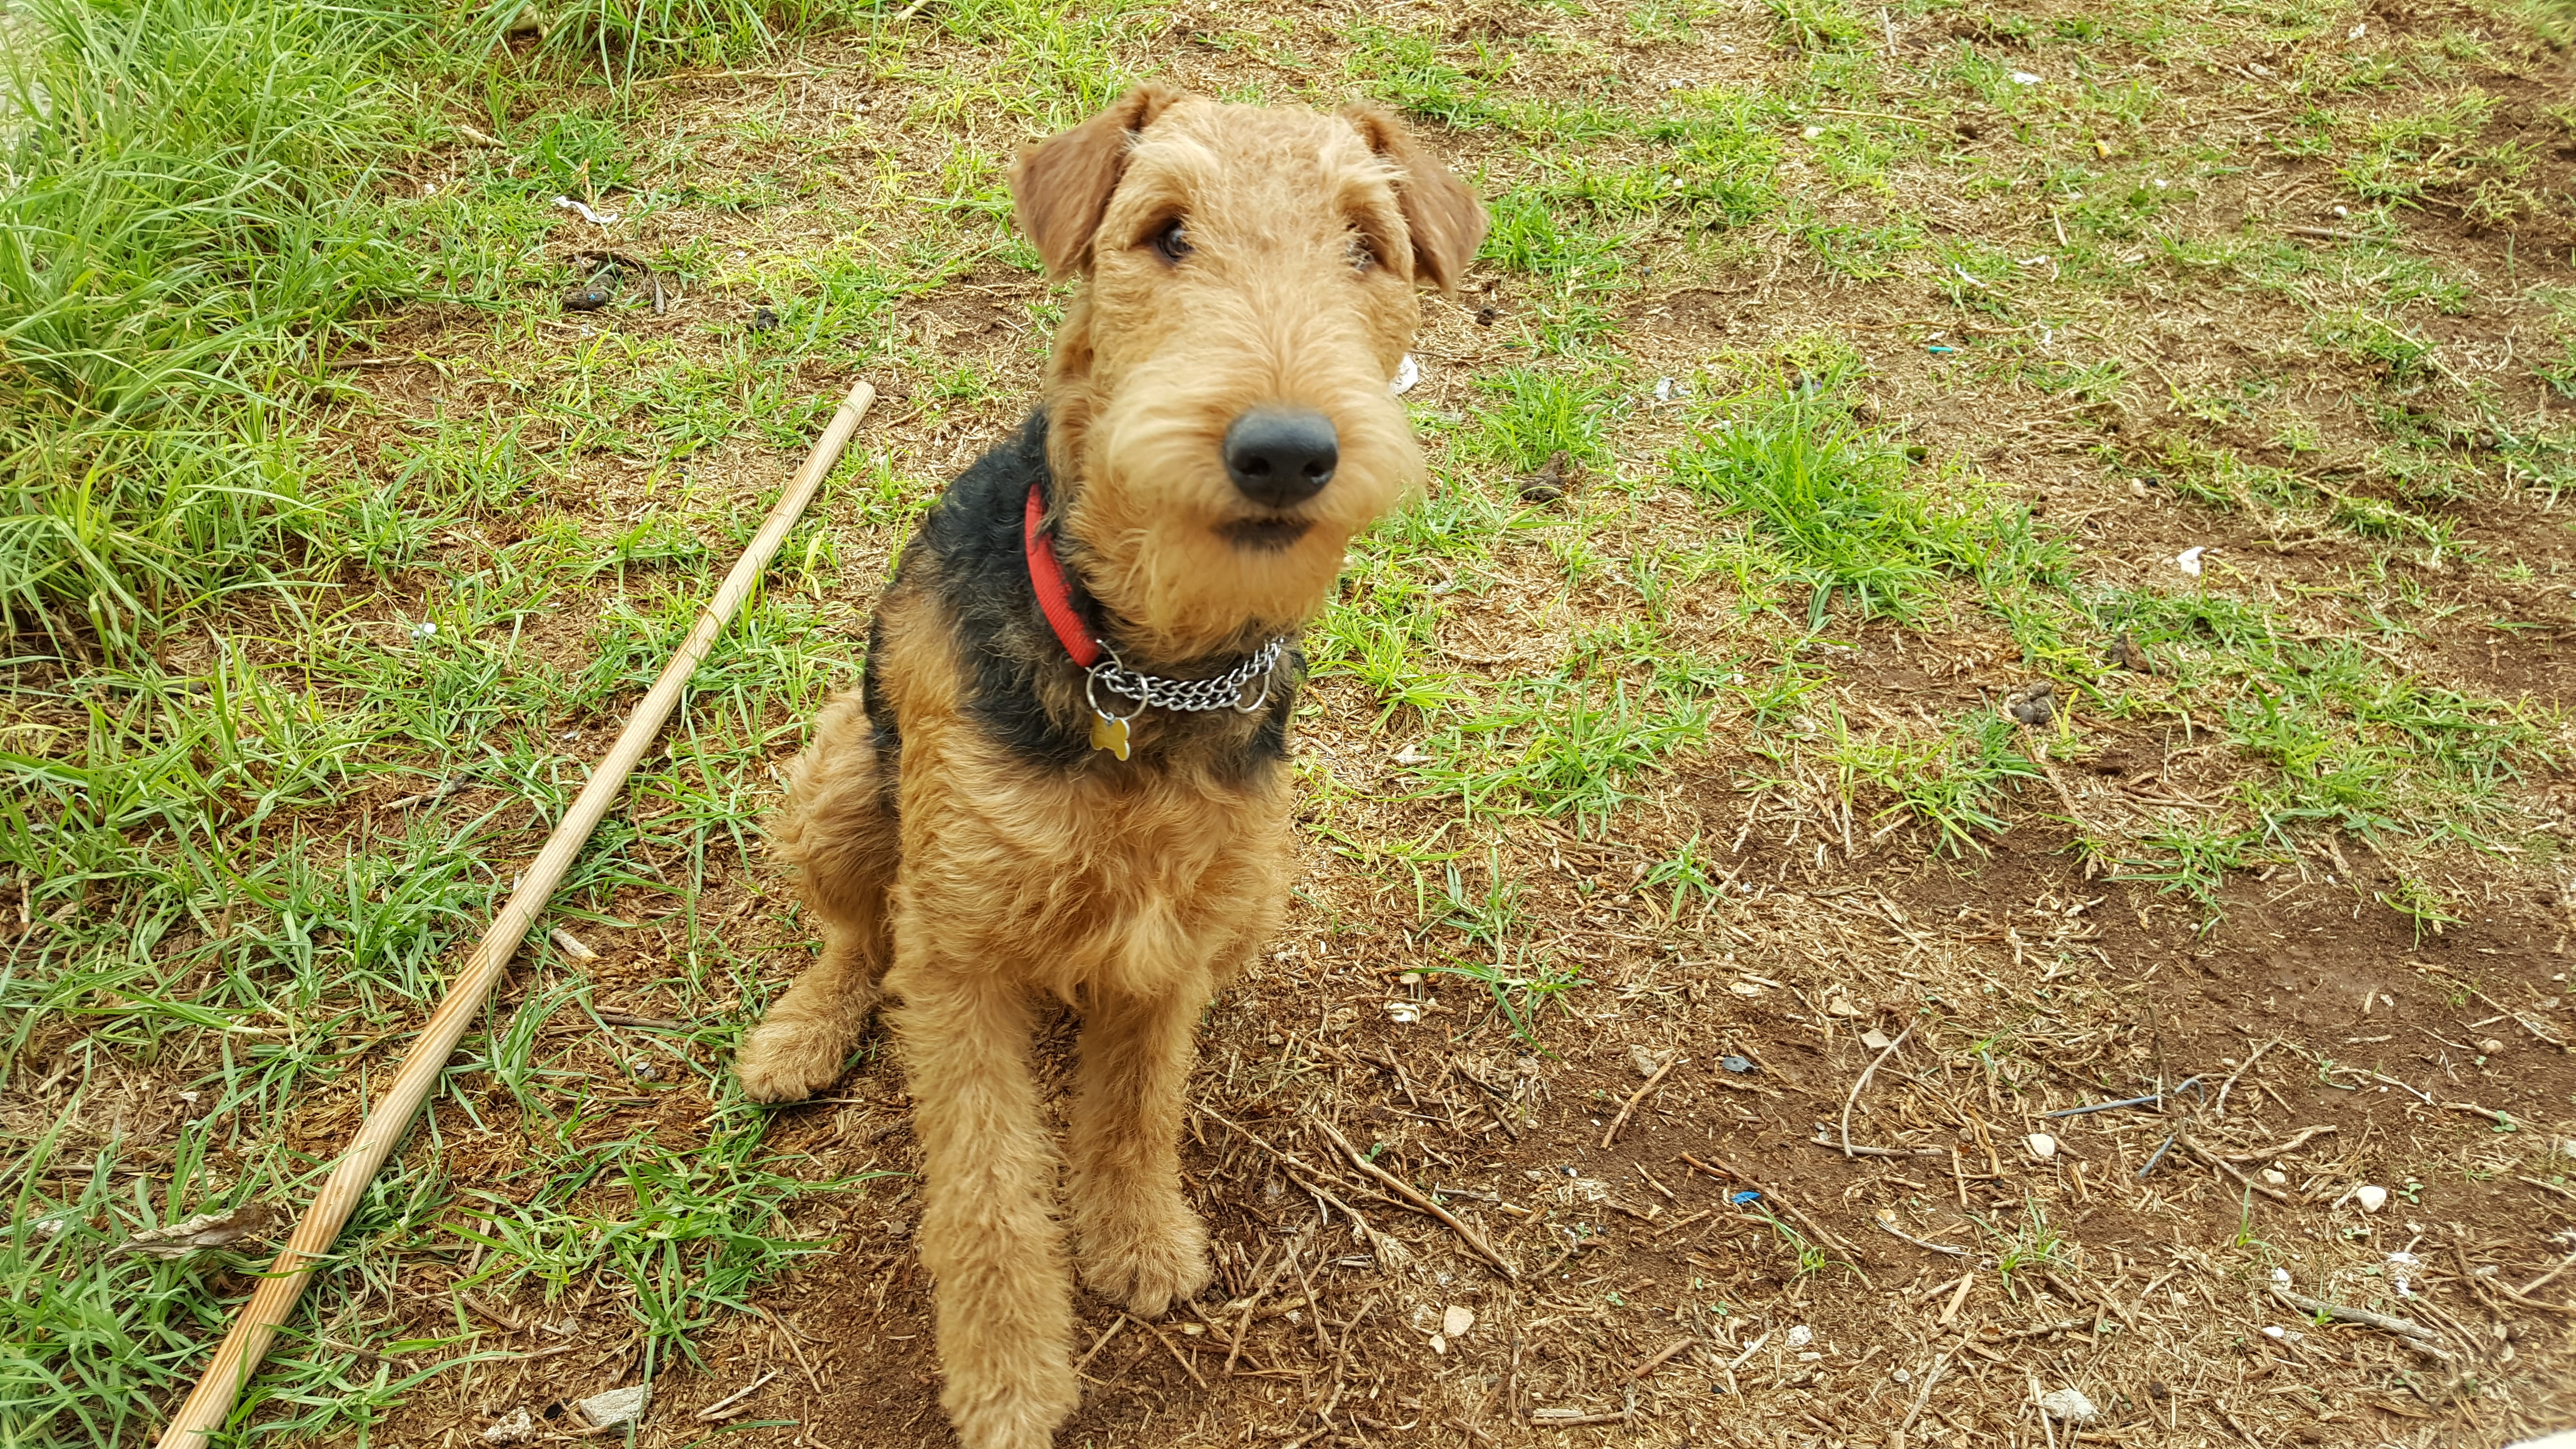 Venus the Airedale